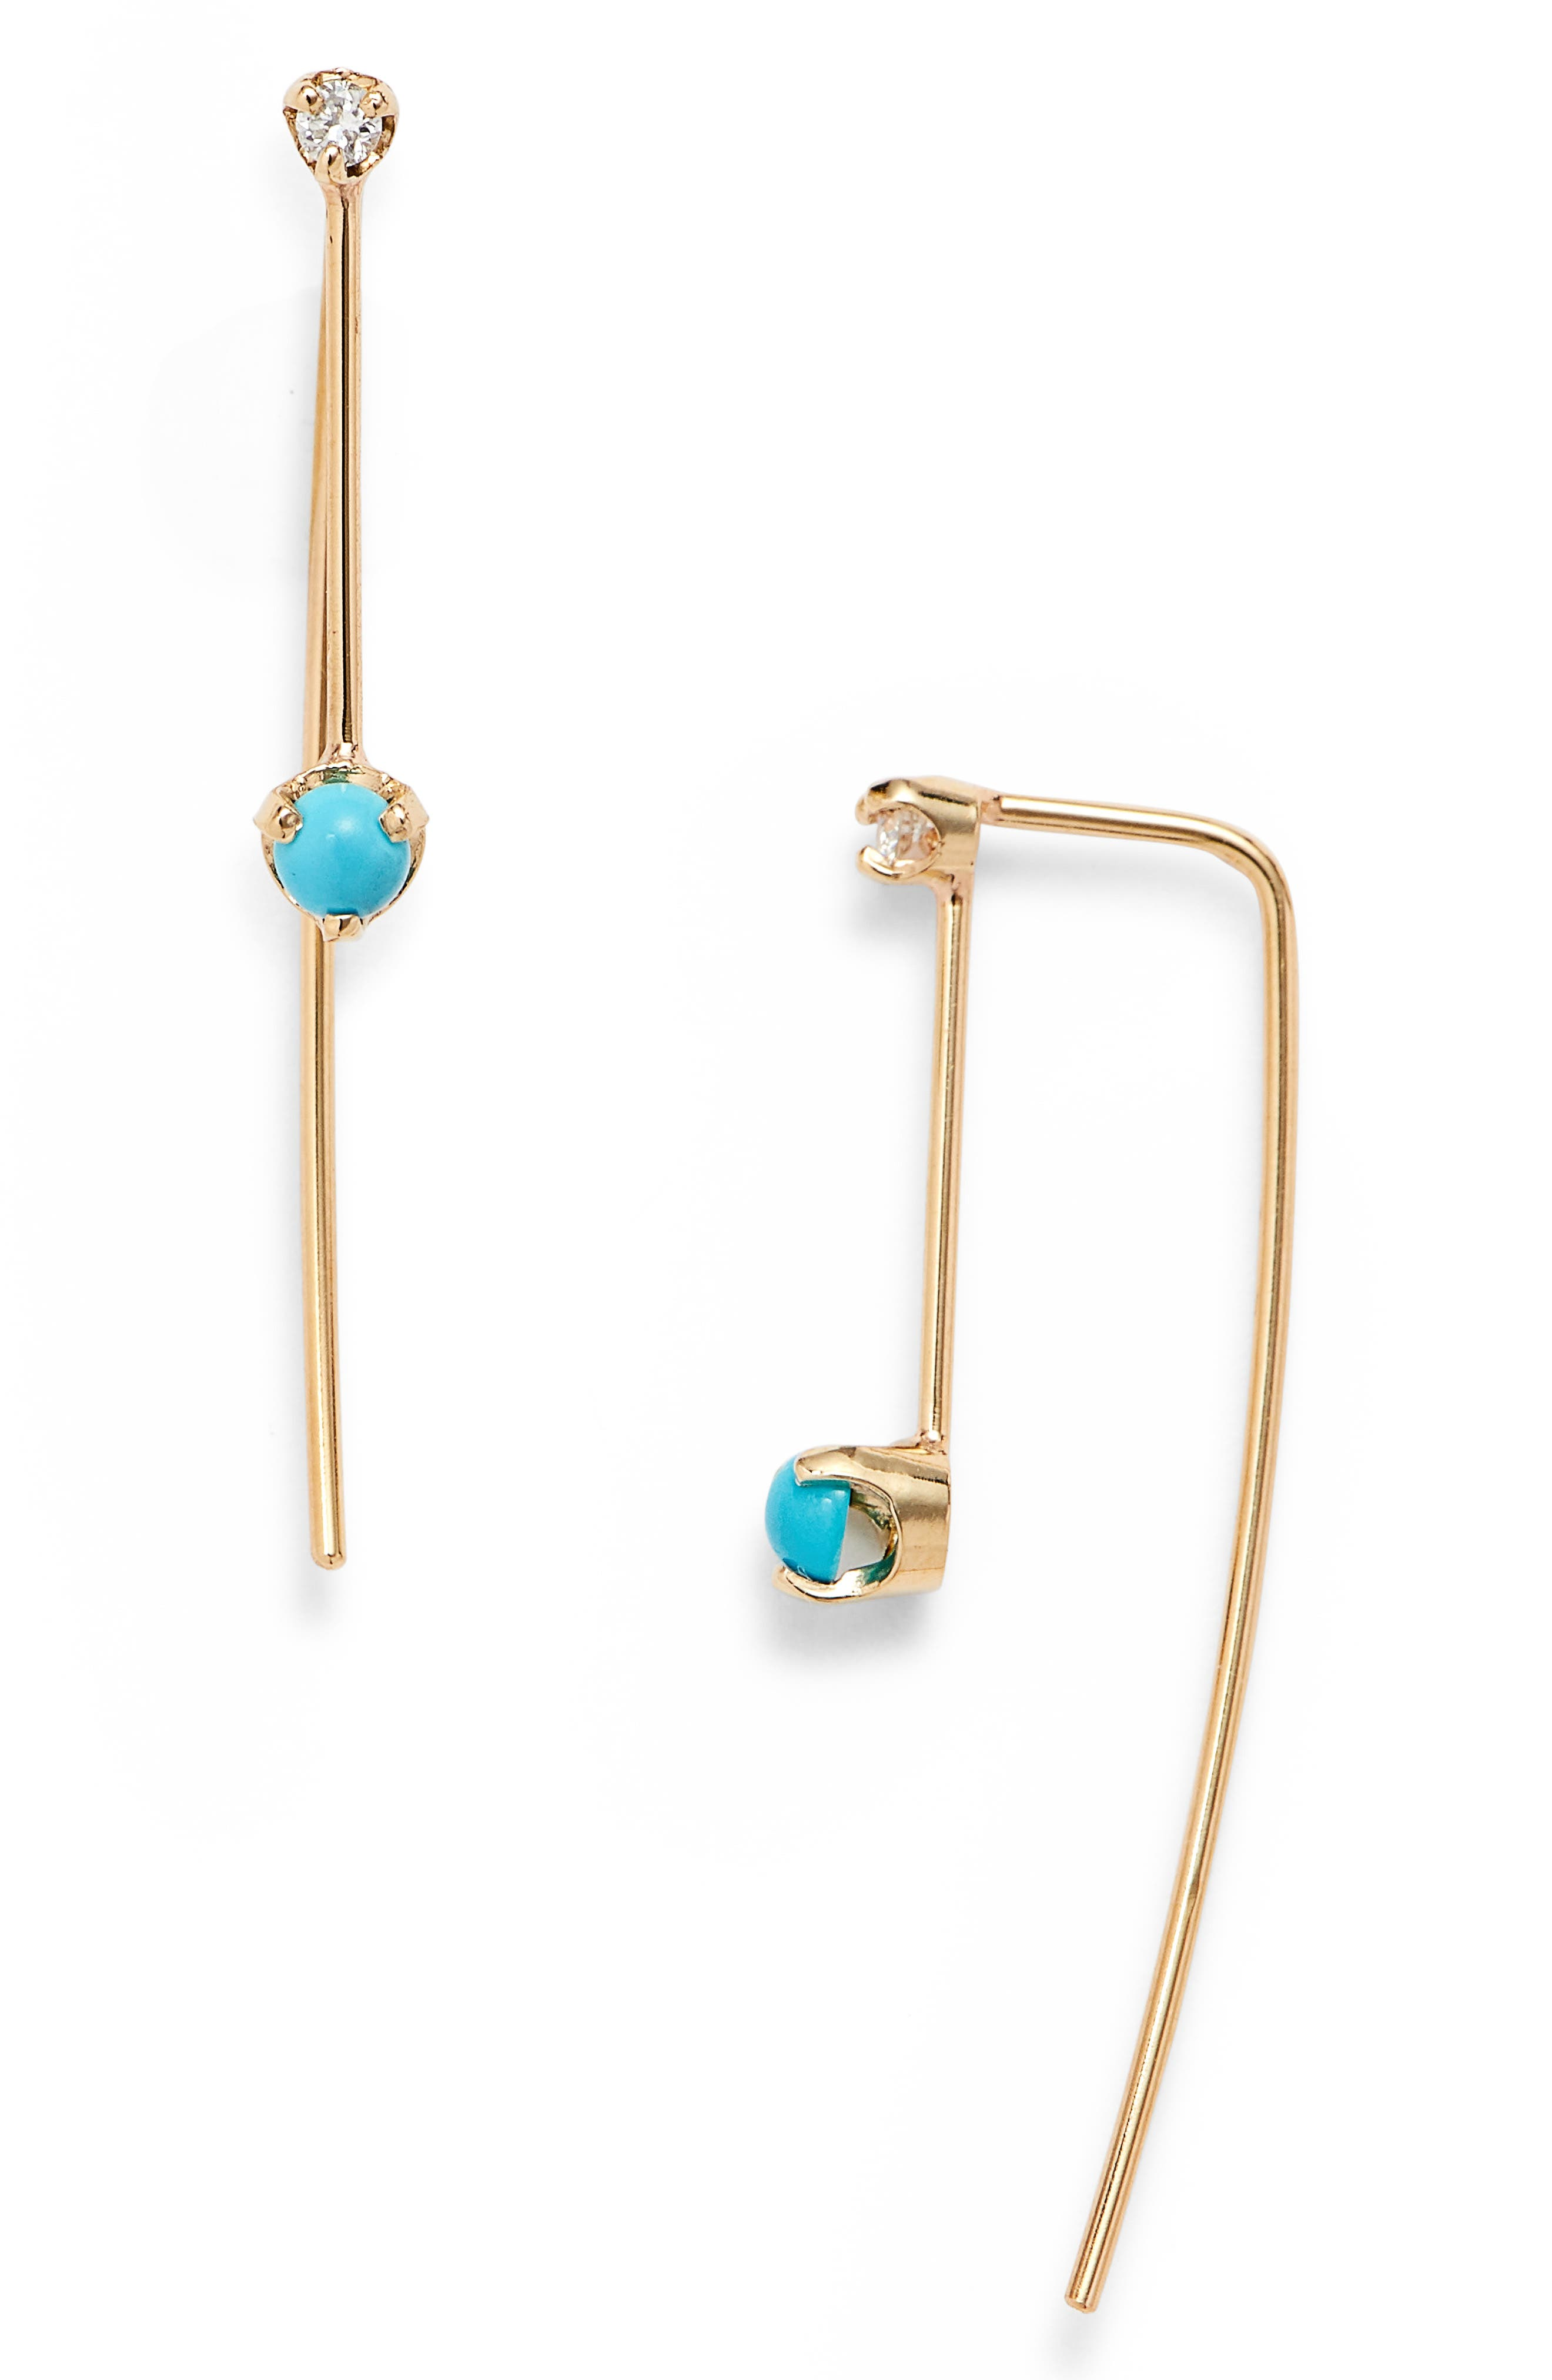 Turquoise & Diamond Threader Earrings,                         Main,                         color, Yellow Gold